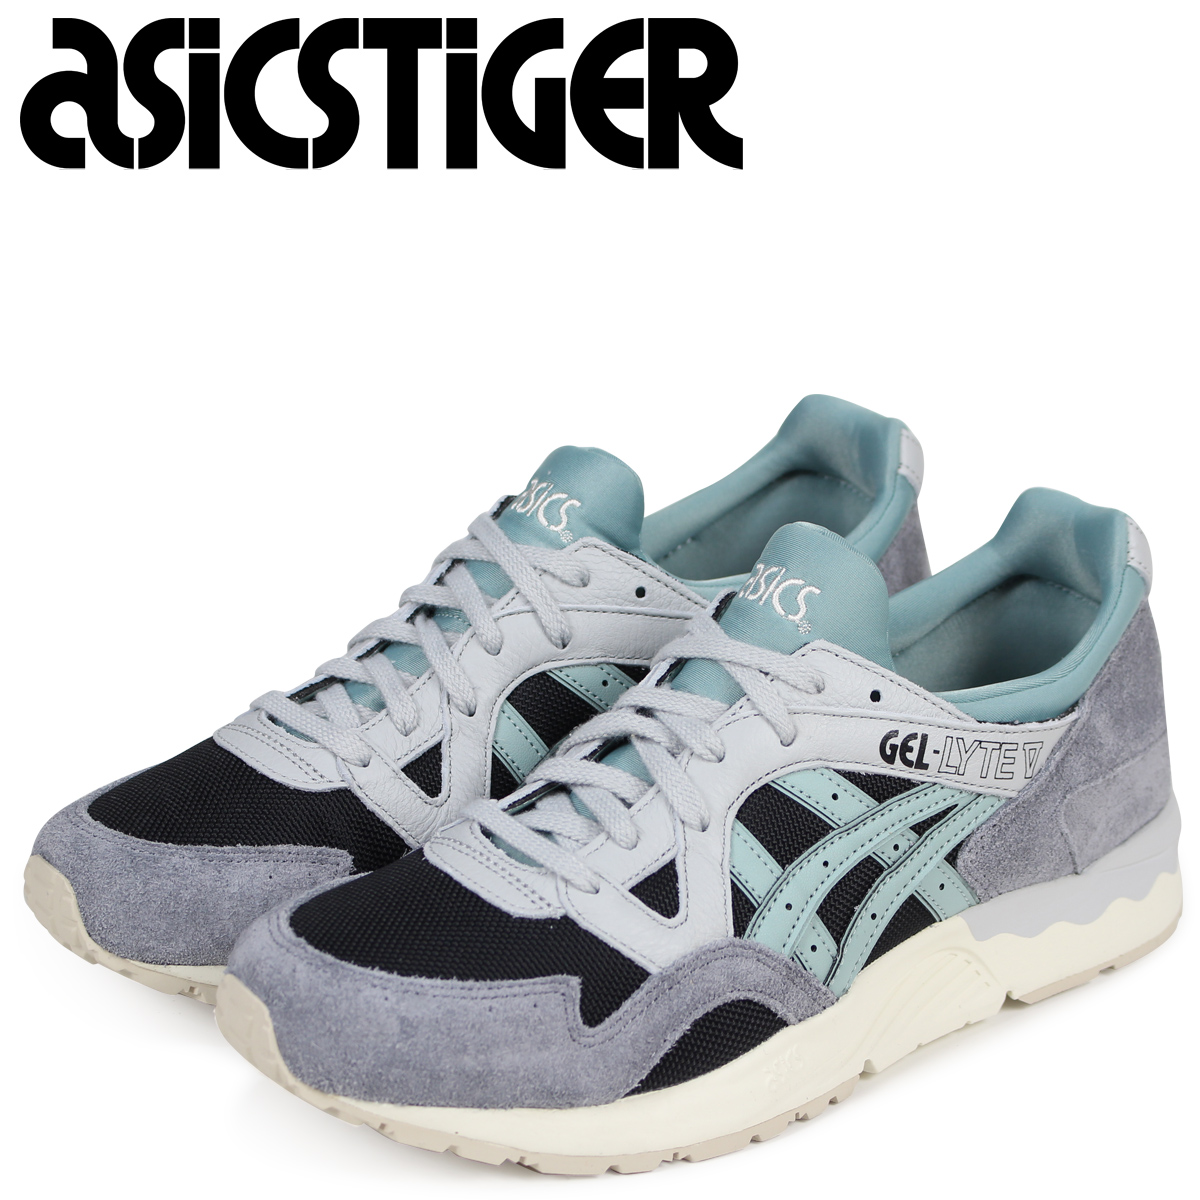 brand new f8e29 350d3 asics Tiger gel light 5 ASICS tiger sneakers GEL-LYTE V H805L-9046 men blue